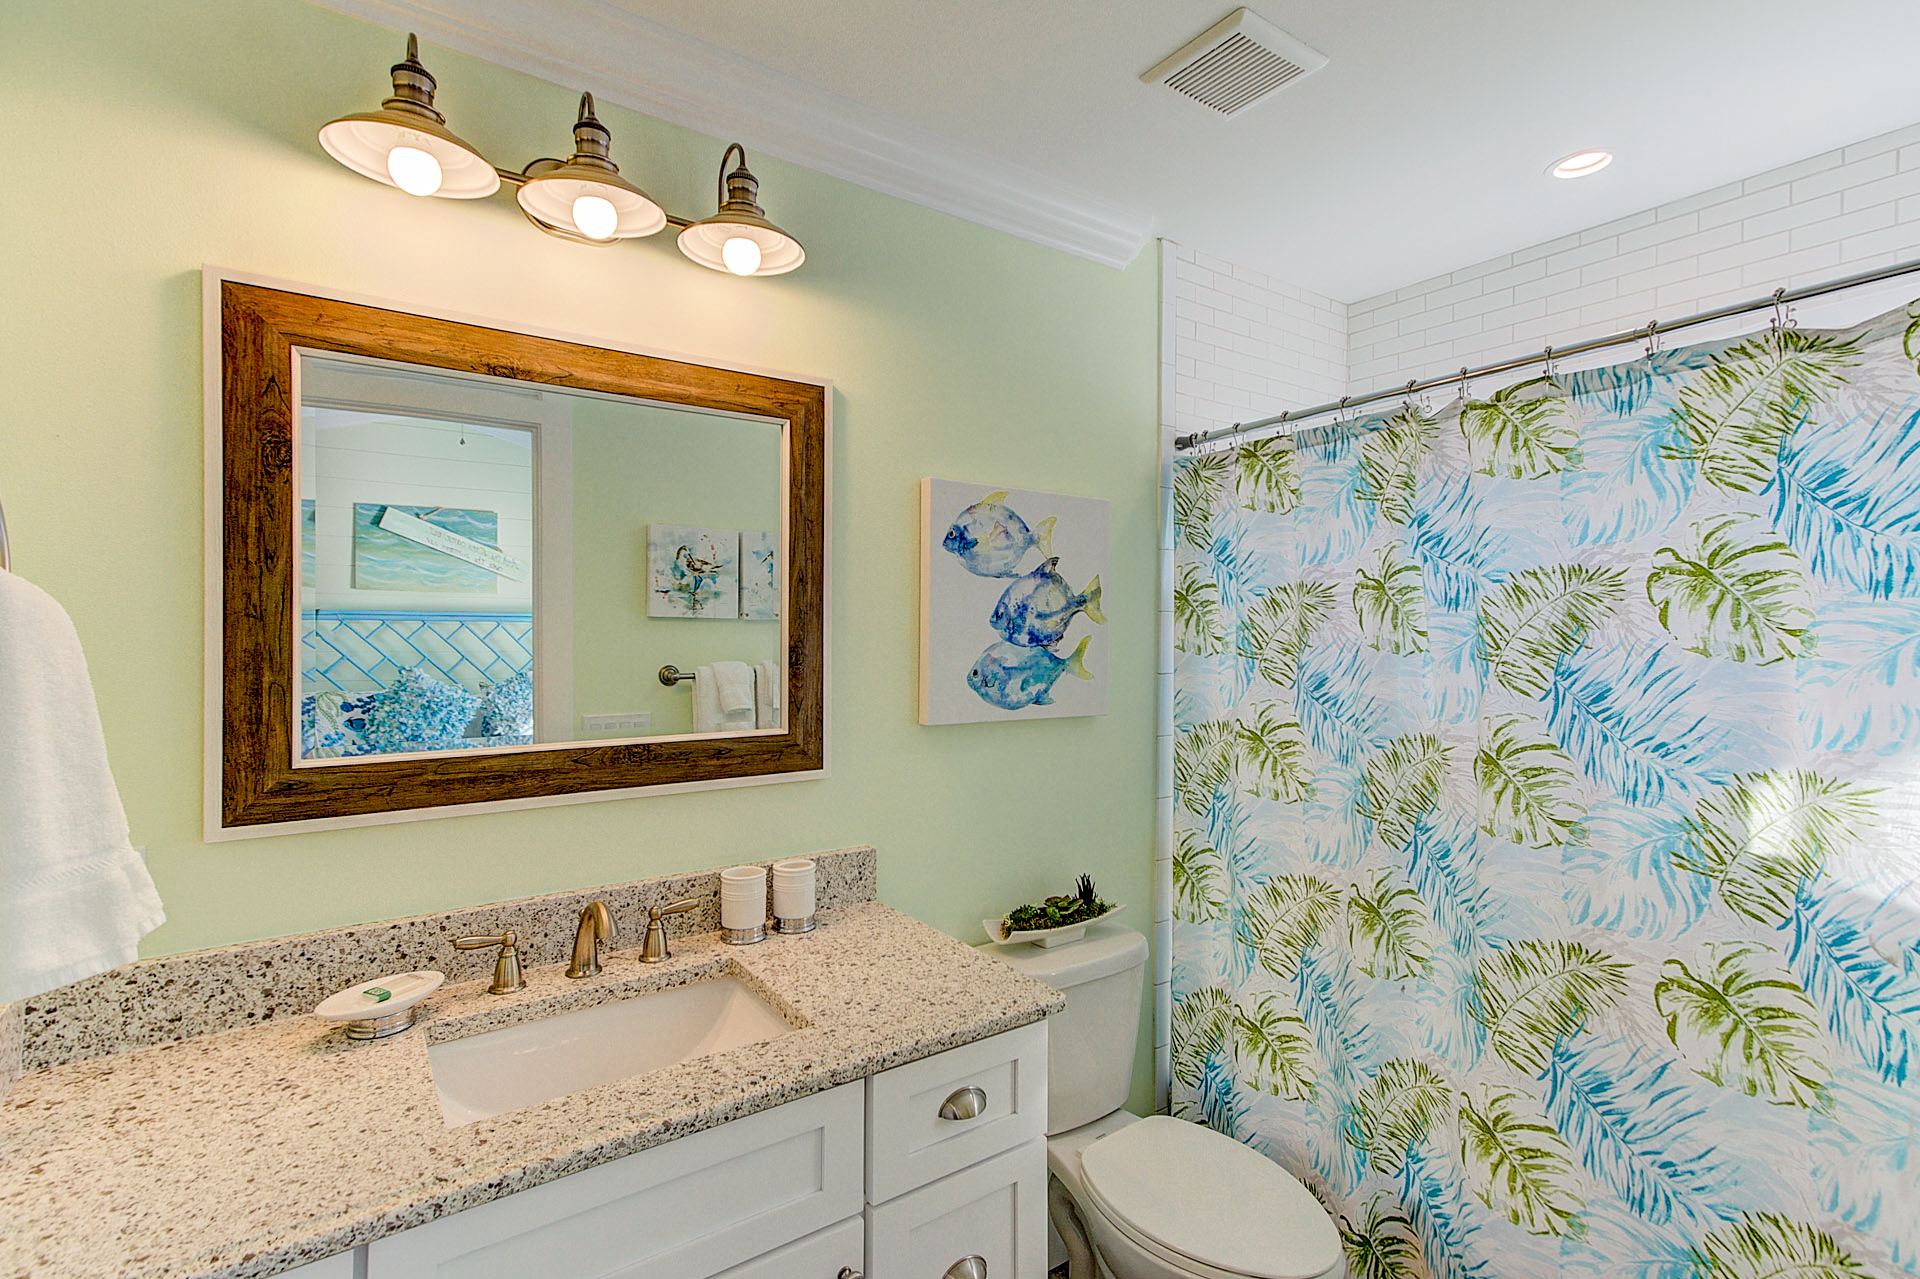 Bedroom 3 Bathroom